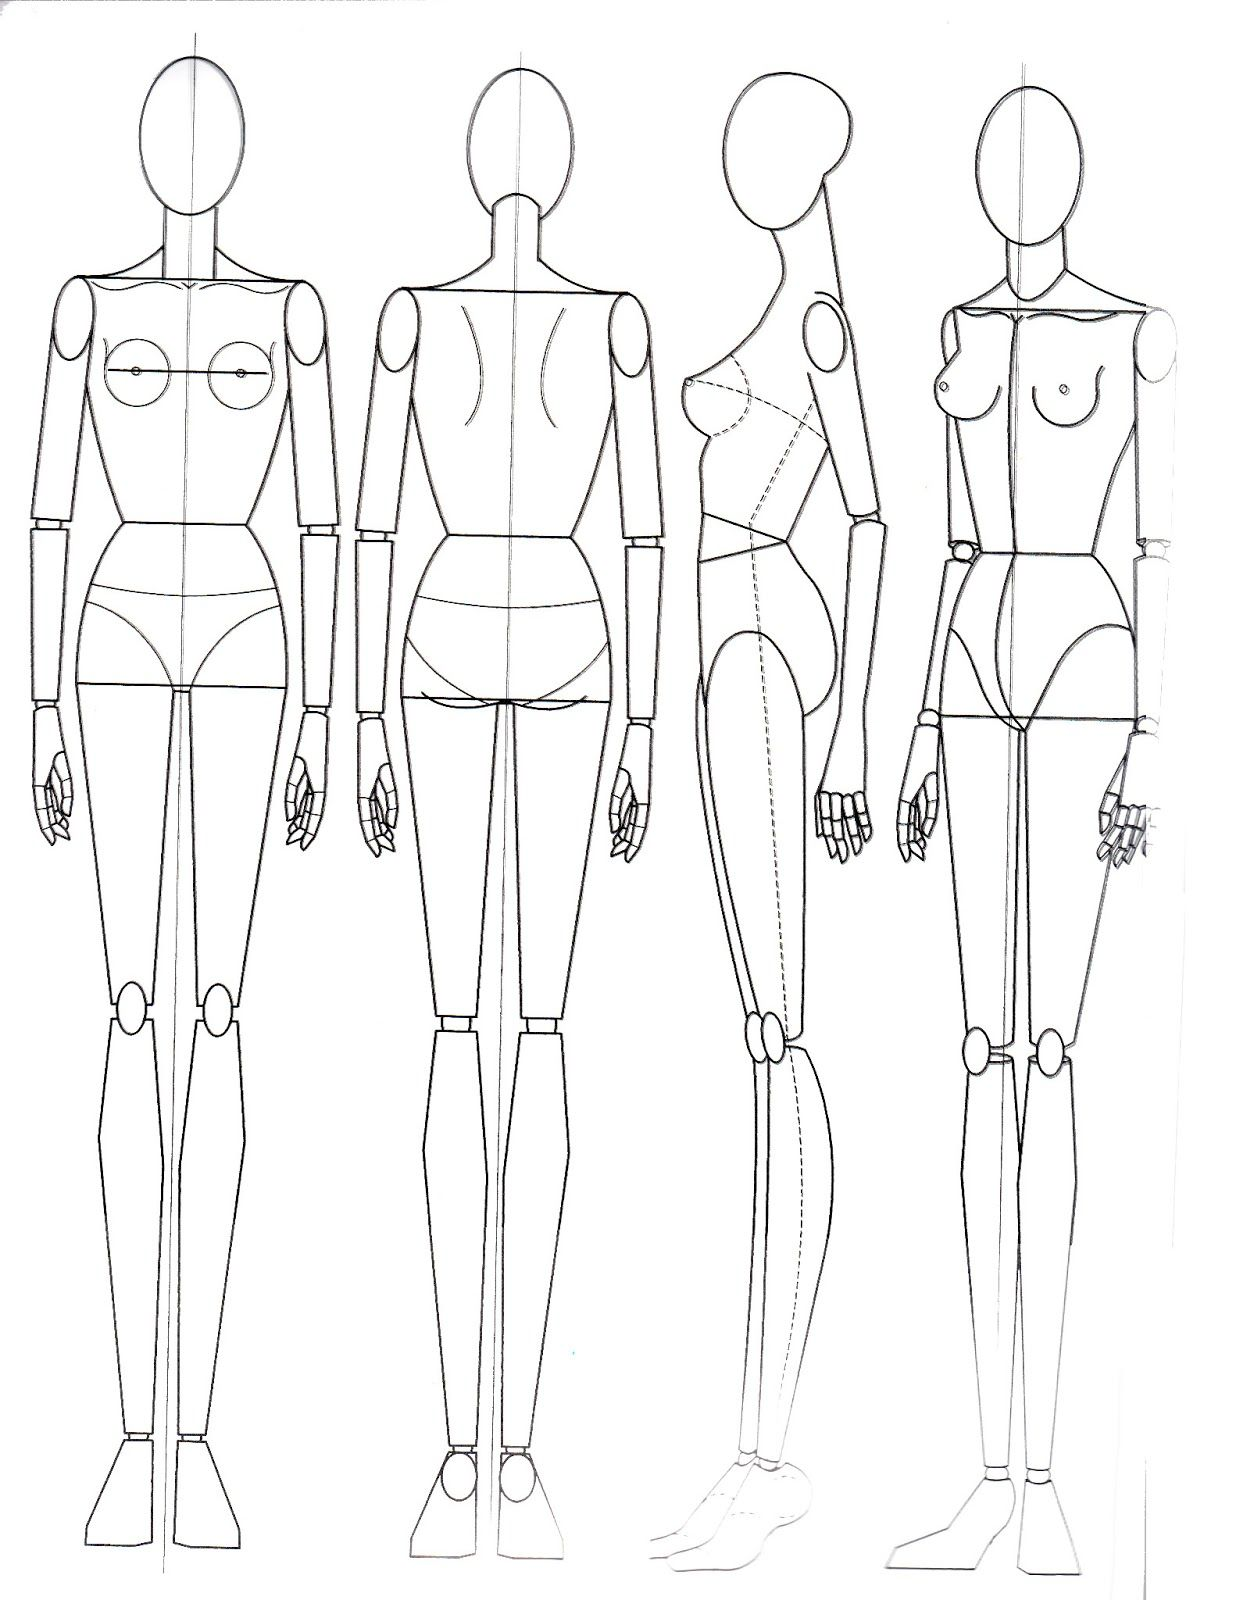 Paper Doll School: The Basics of Anatomy | Technical Drawings ...